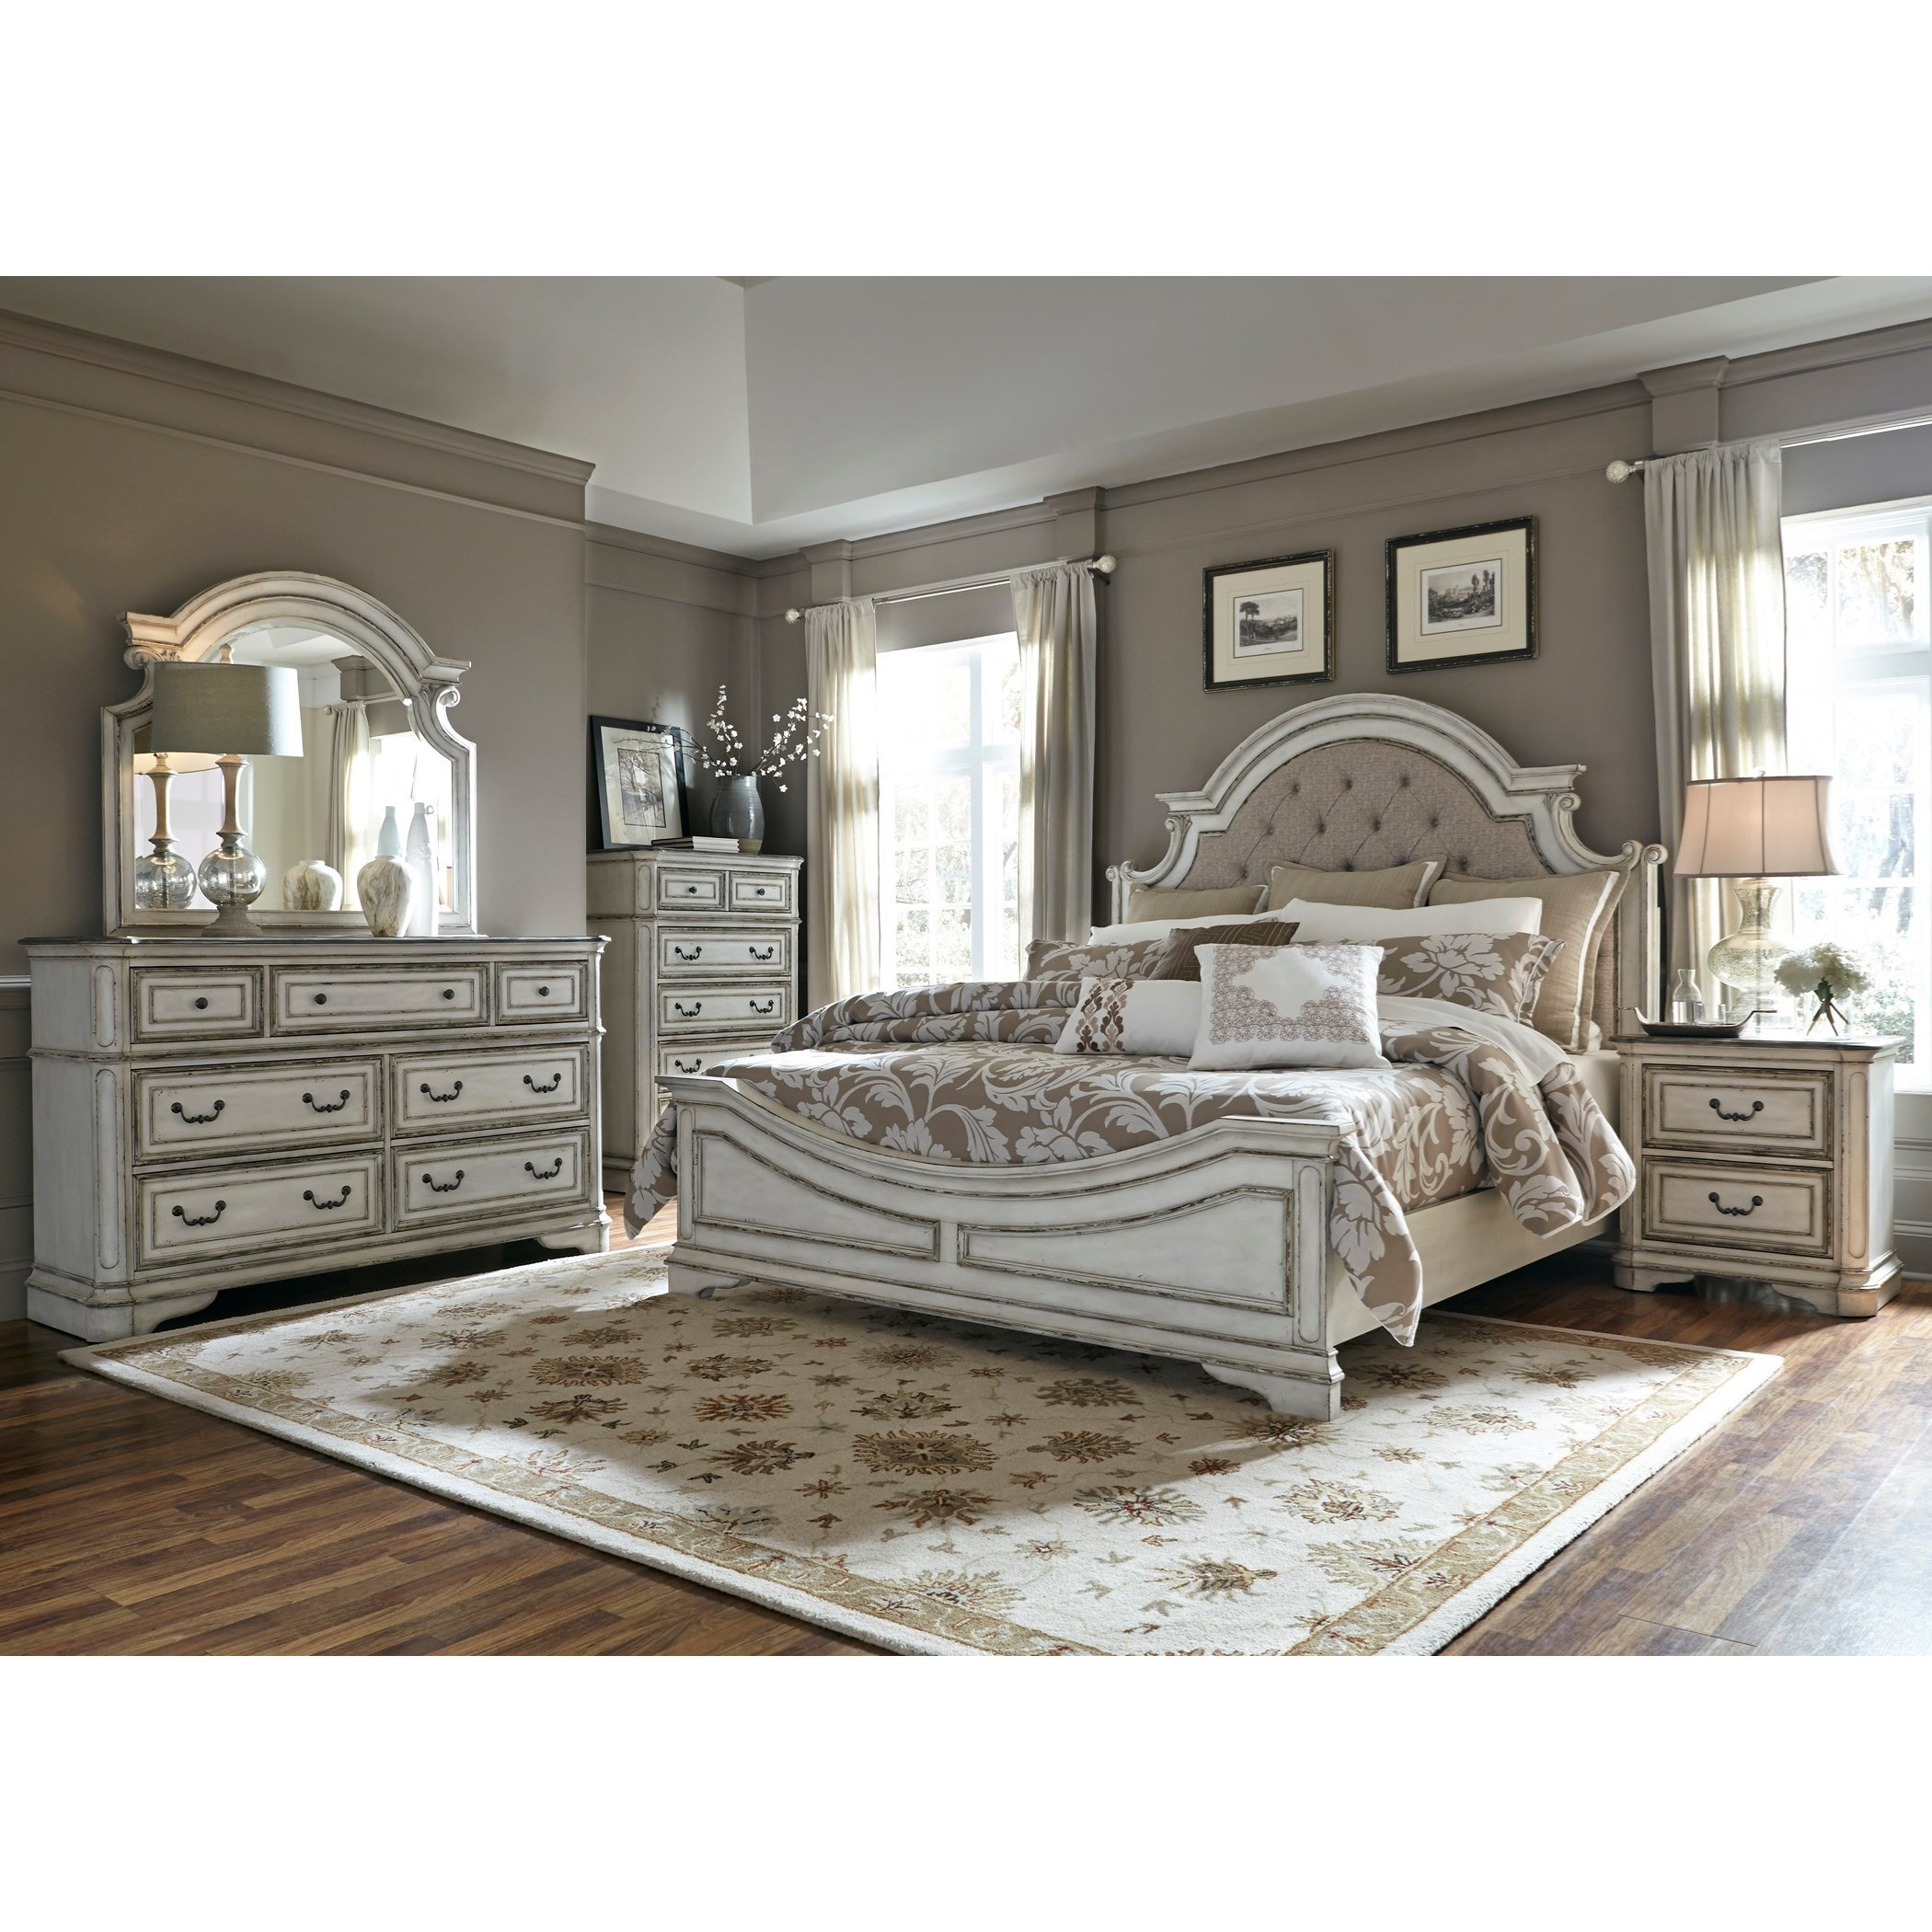 Liberty furniture magnolia manor queen bedroom group for Bedroom furniture groups